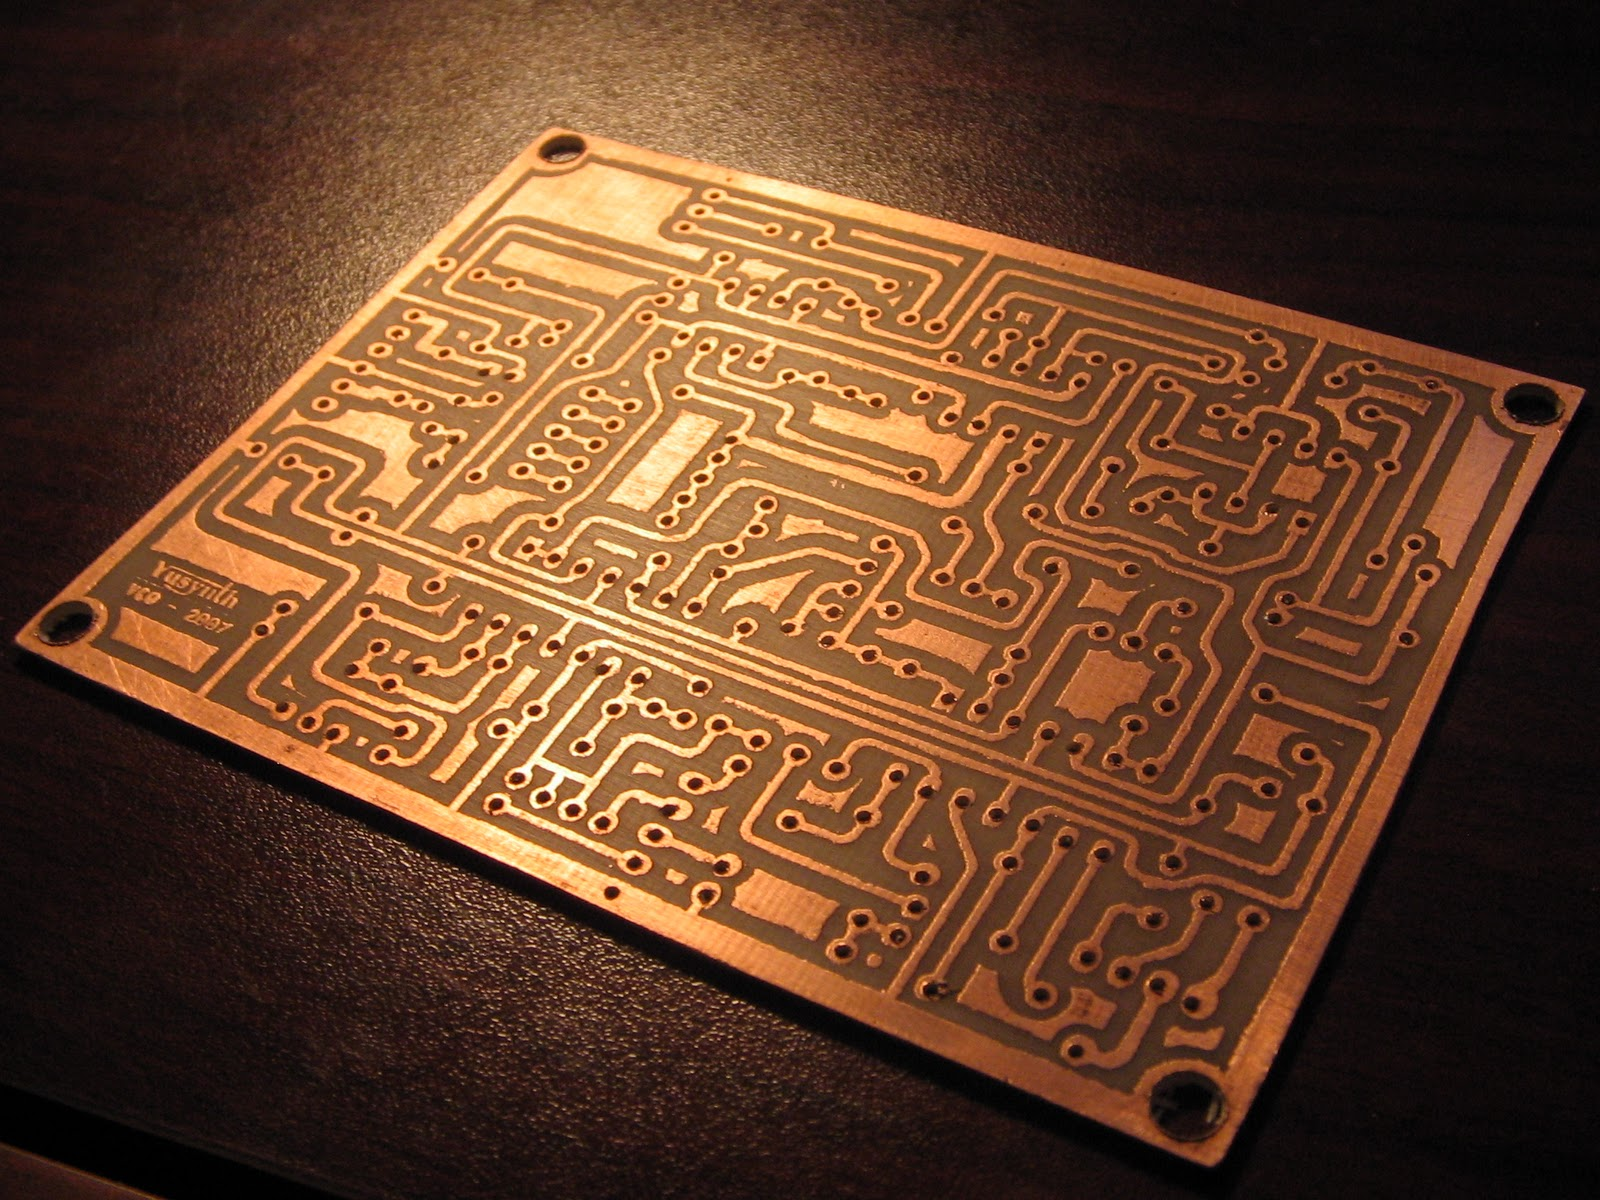 They Are On A Custom Etched Circuit Board And It Is The First Circuit